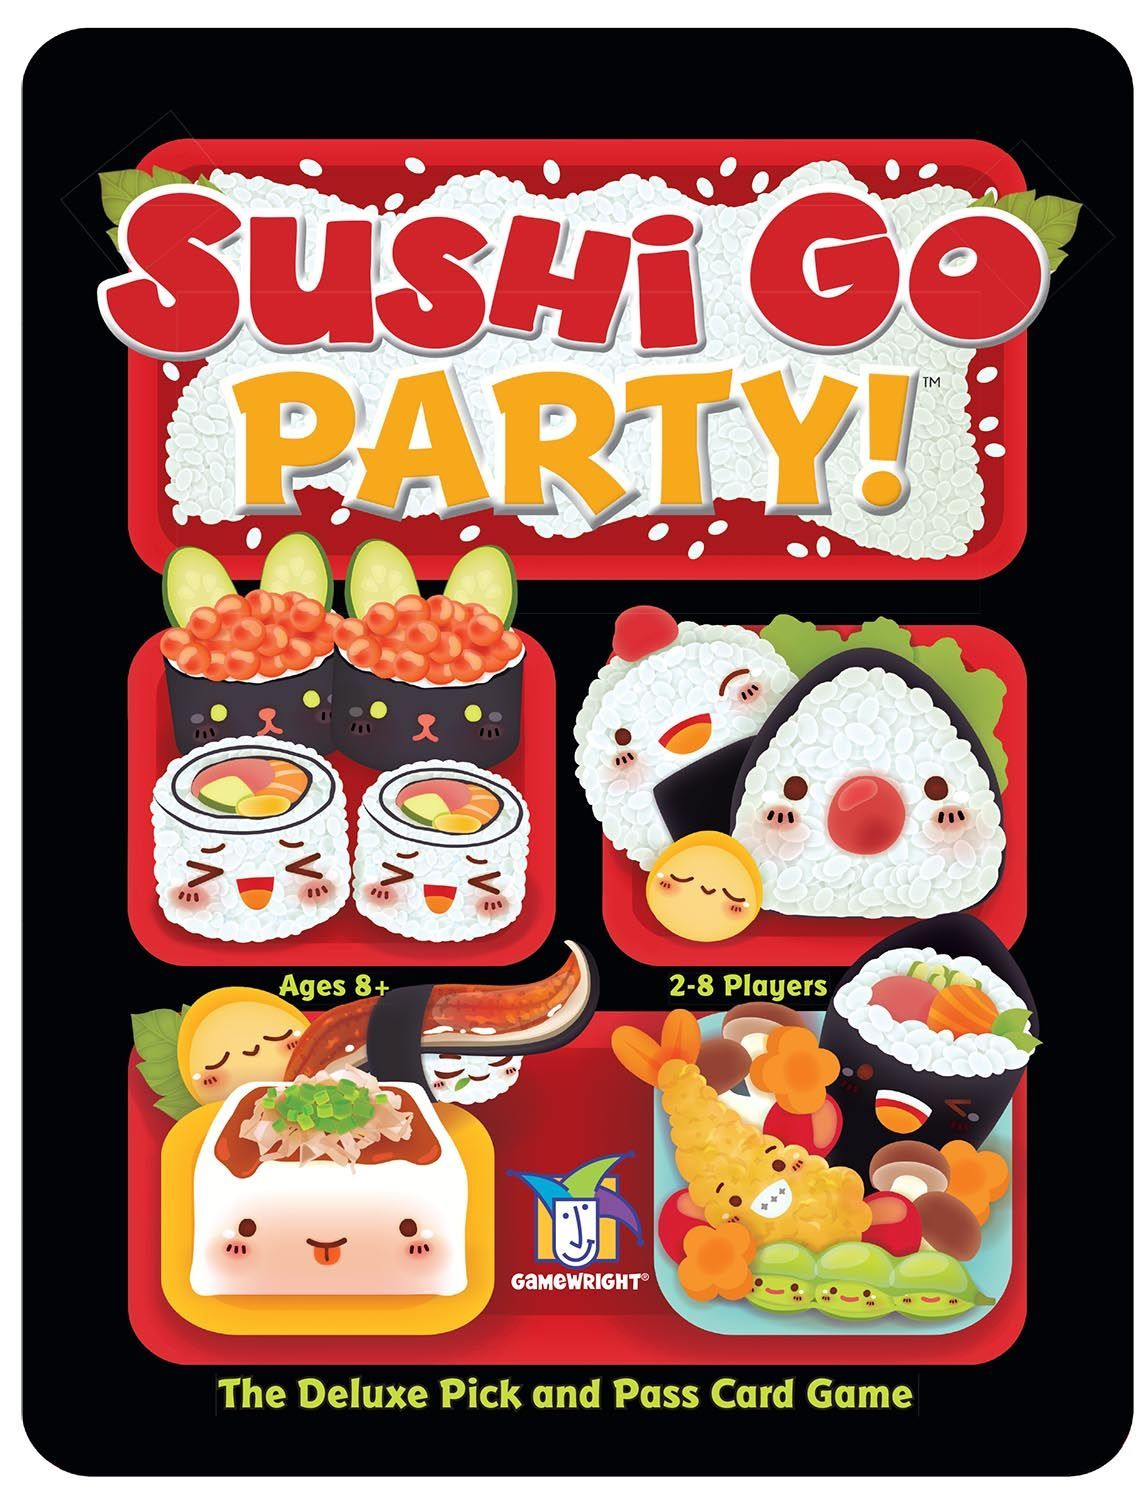 Main image for Sushi Go Party!